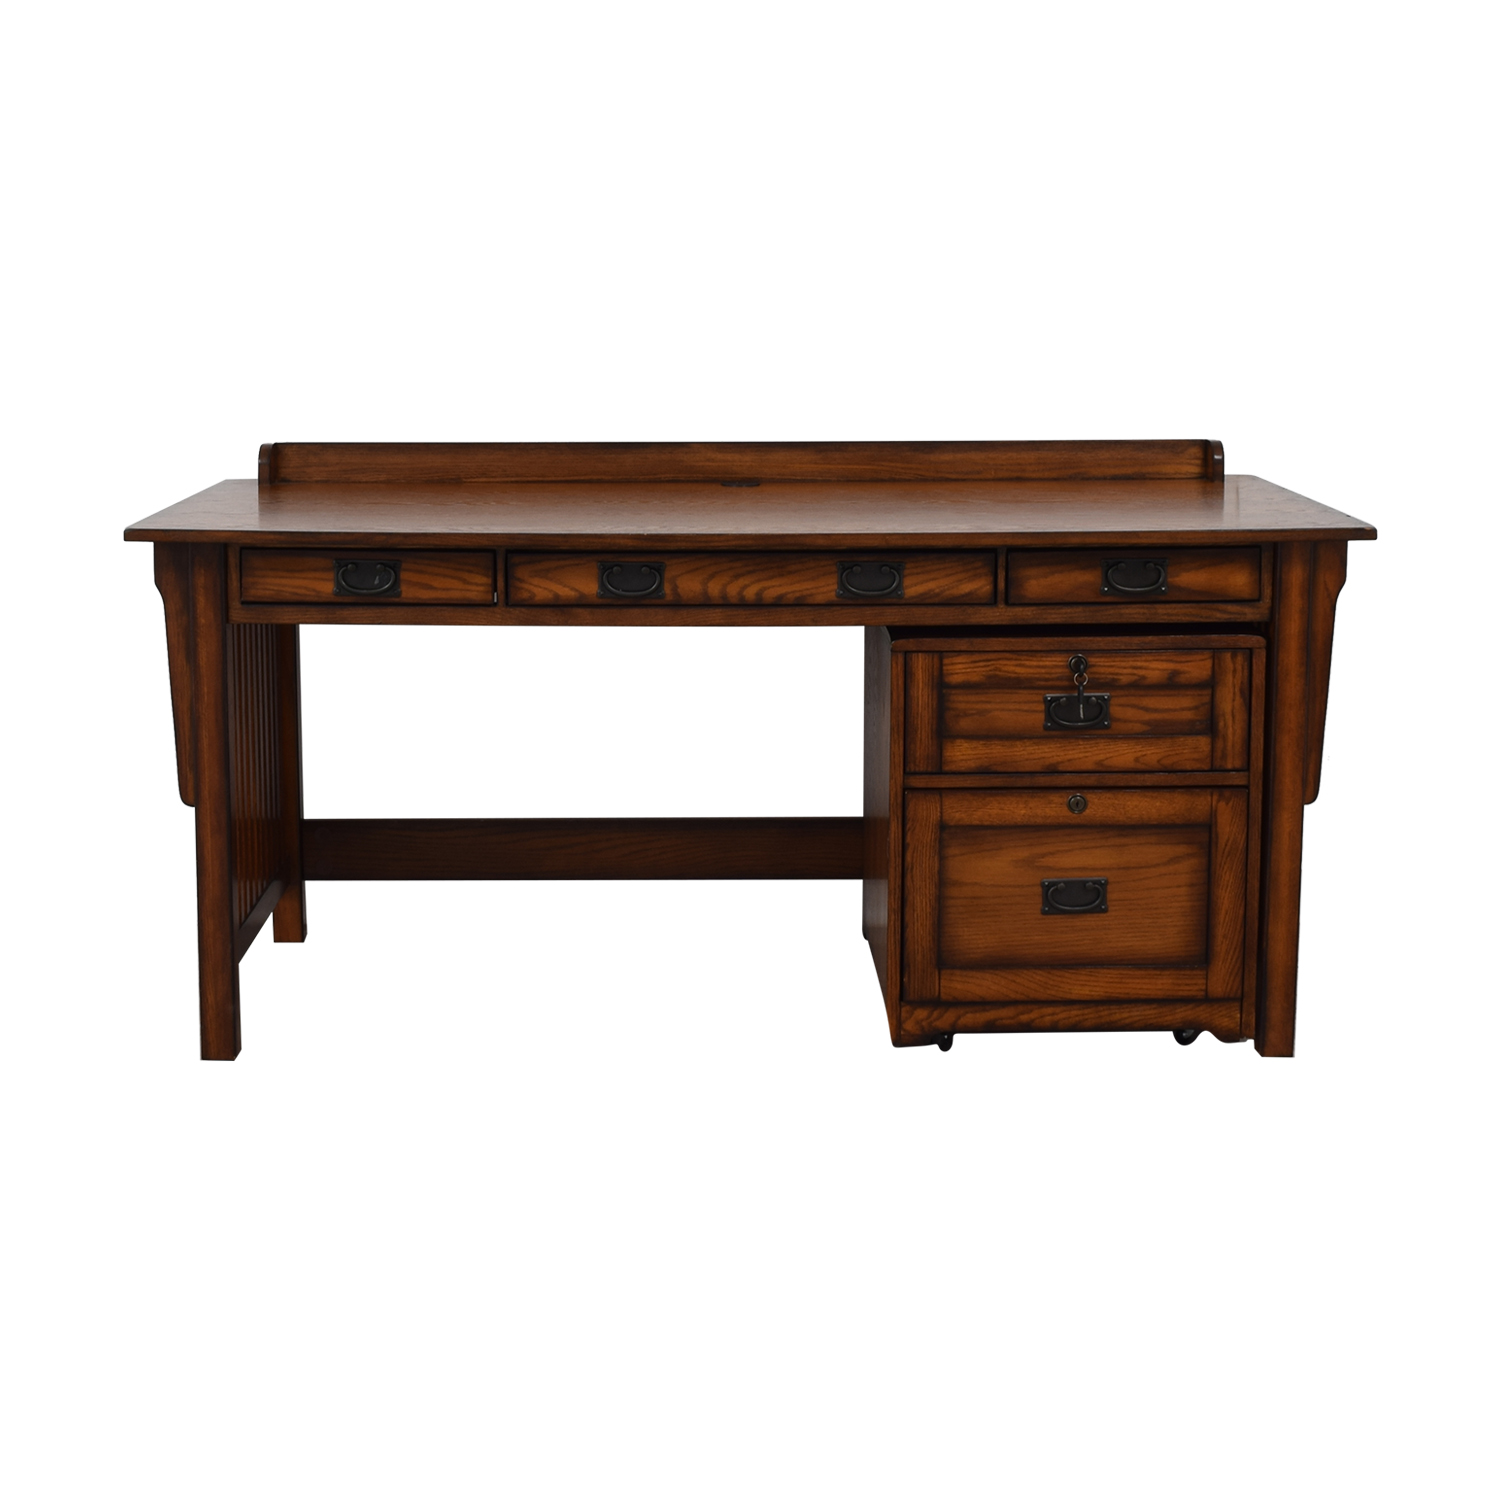 Hammary Furniture Hammary Furniture Wood Desk and File Cabinet